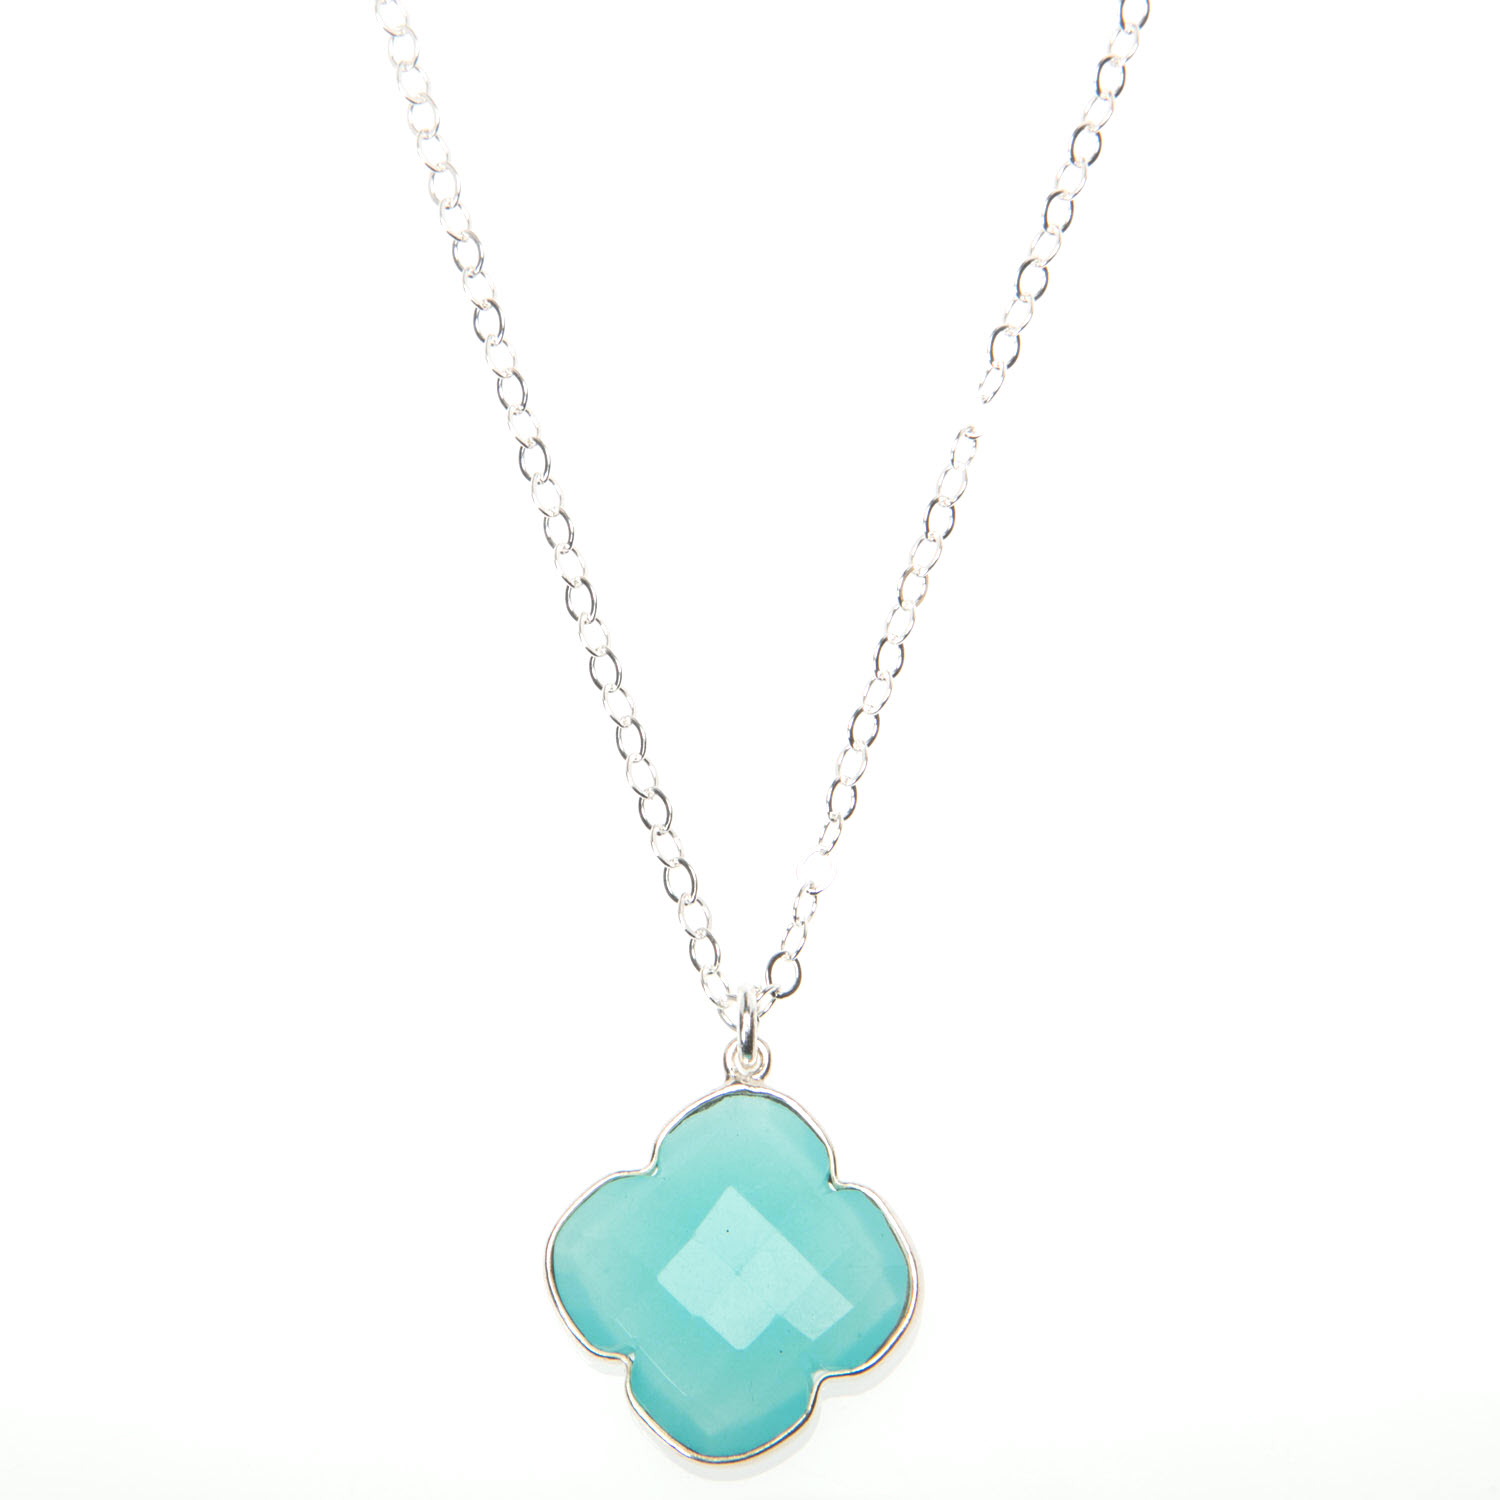 Aqua Blue Chalcedony and Sterling Silver Necklace